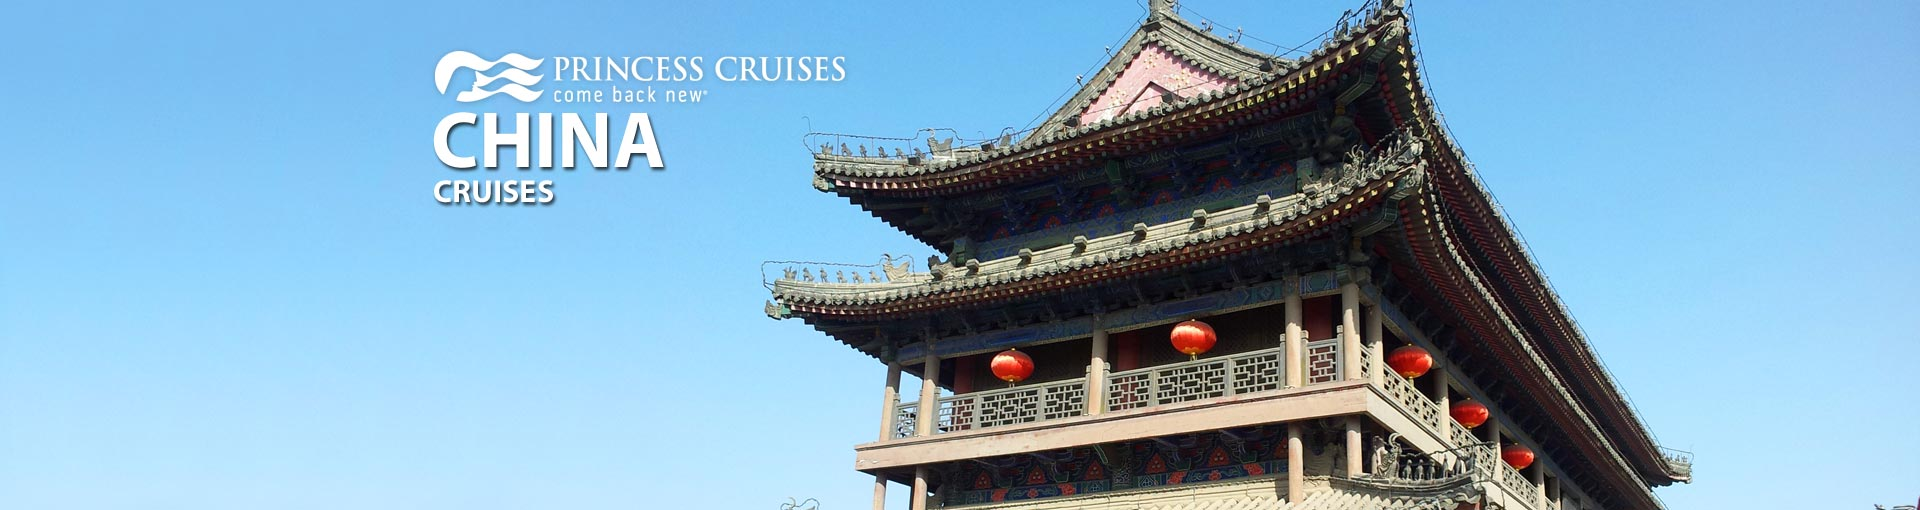 Princess Cruises China Cruises